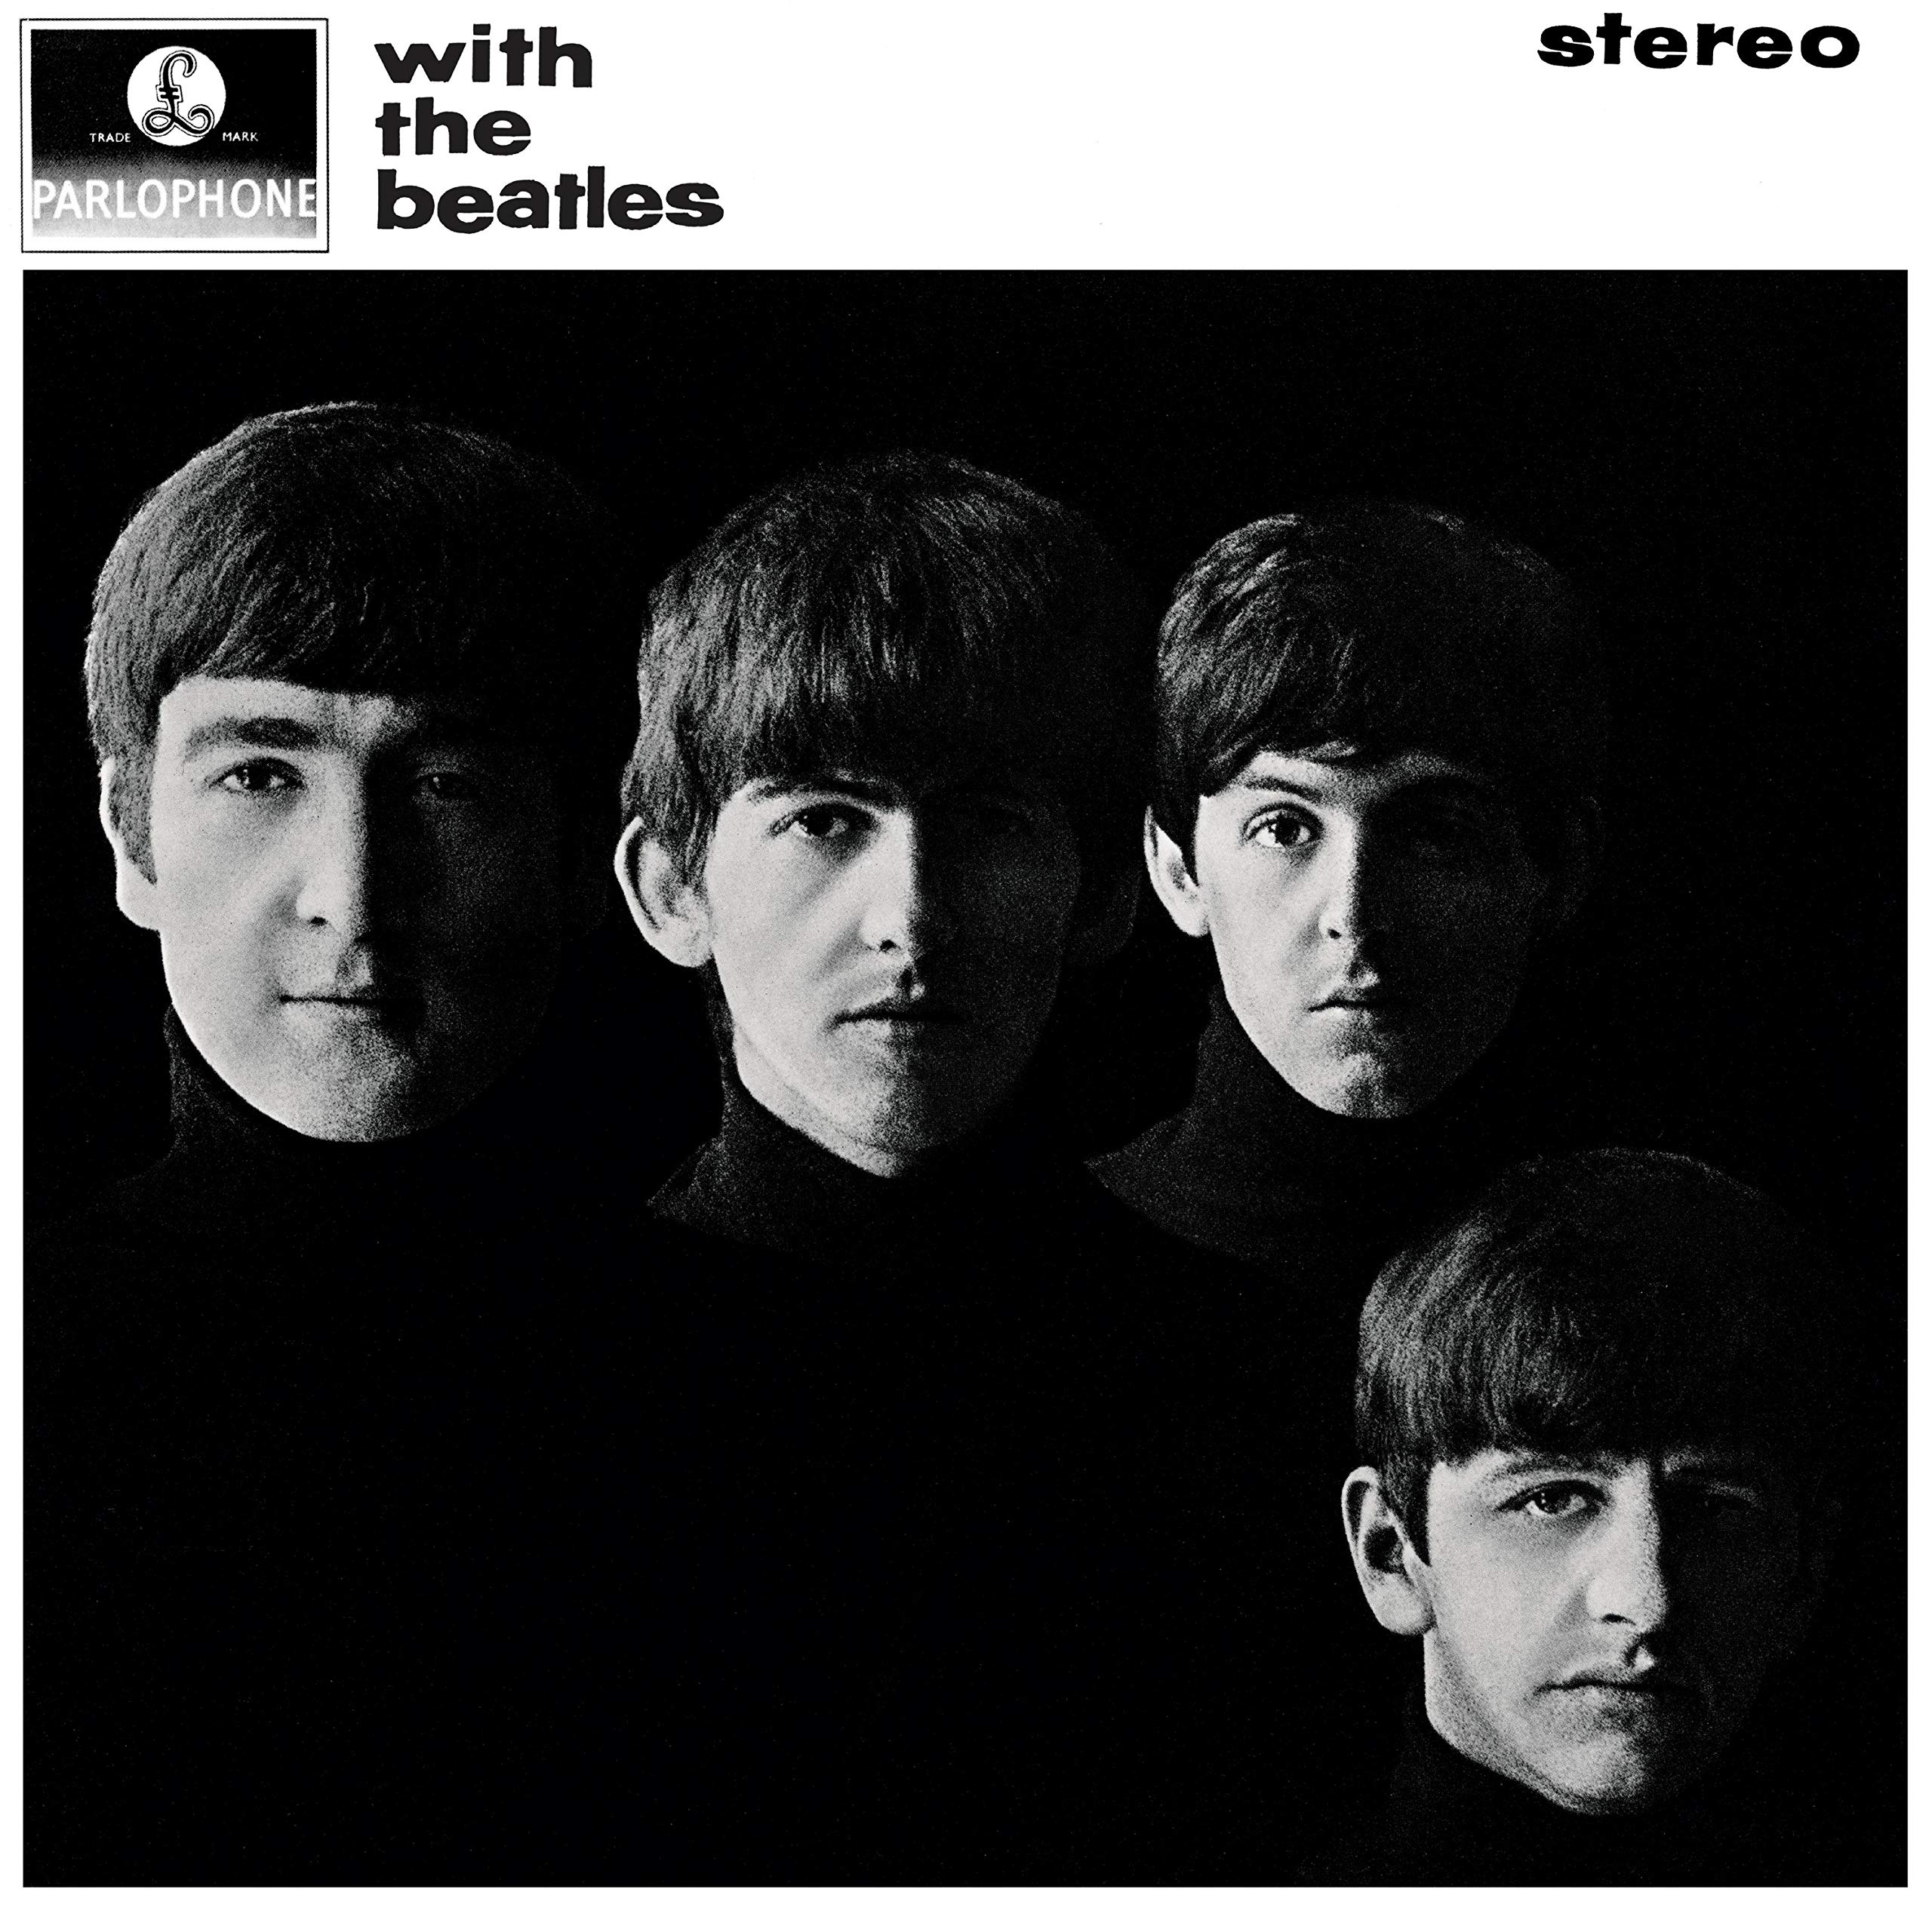 The Beatles – With The Beatles (2018) (REISSUE REMASTERED LP) [FLAC]